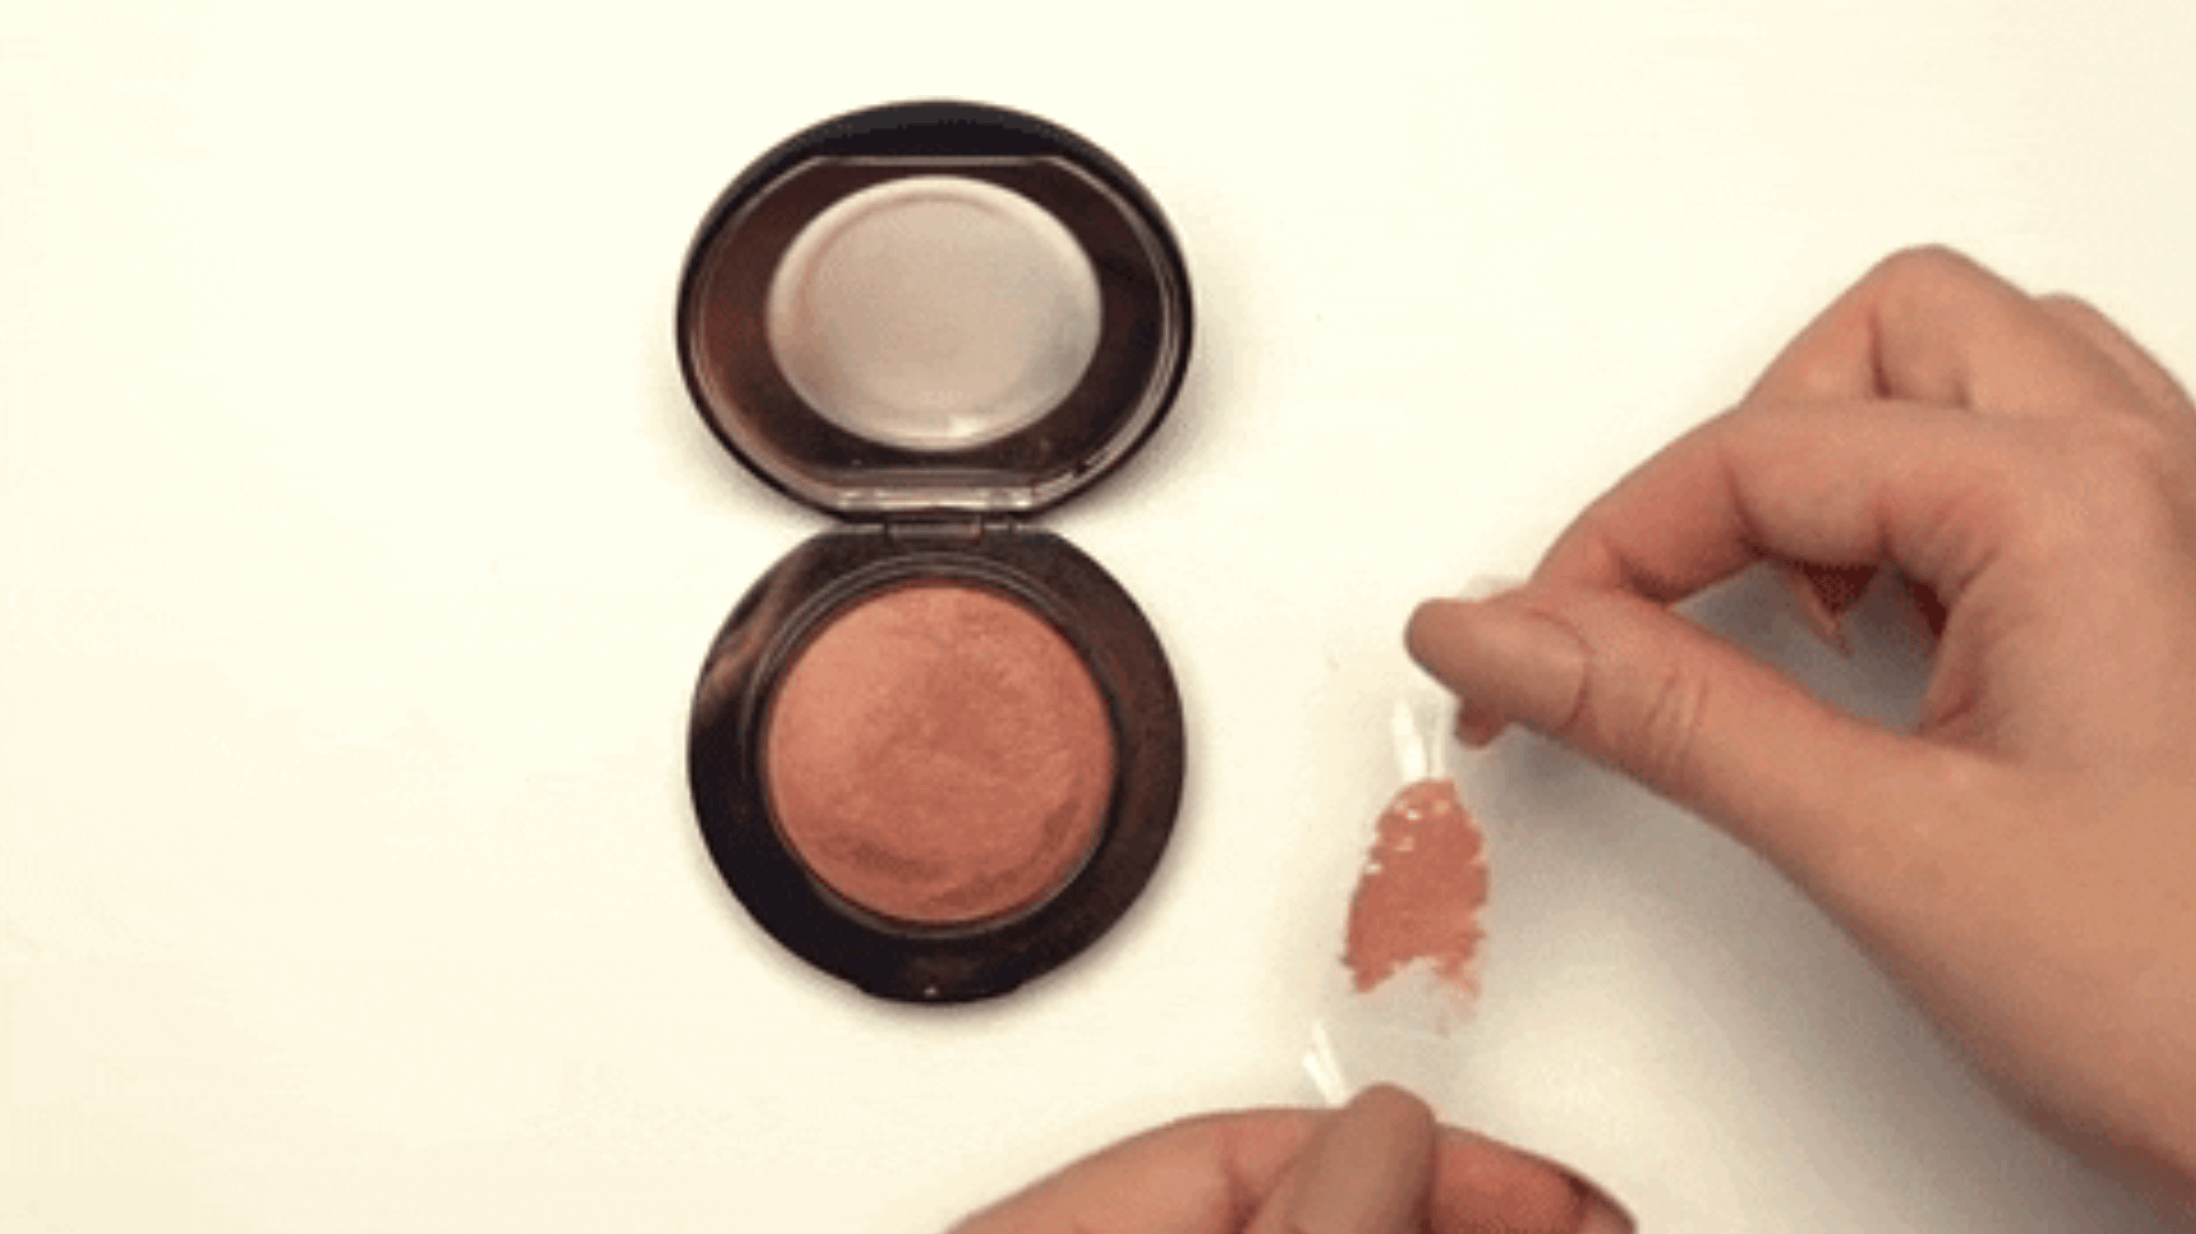 How To Remove That Nasty Wax Layer From Your Powder Products